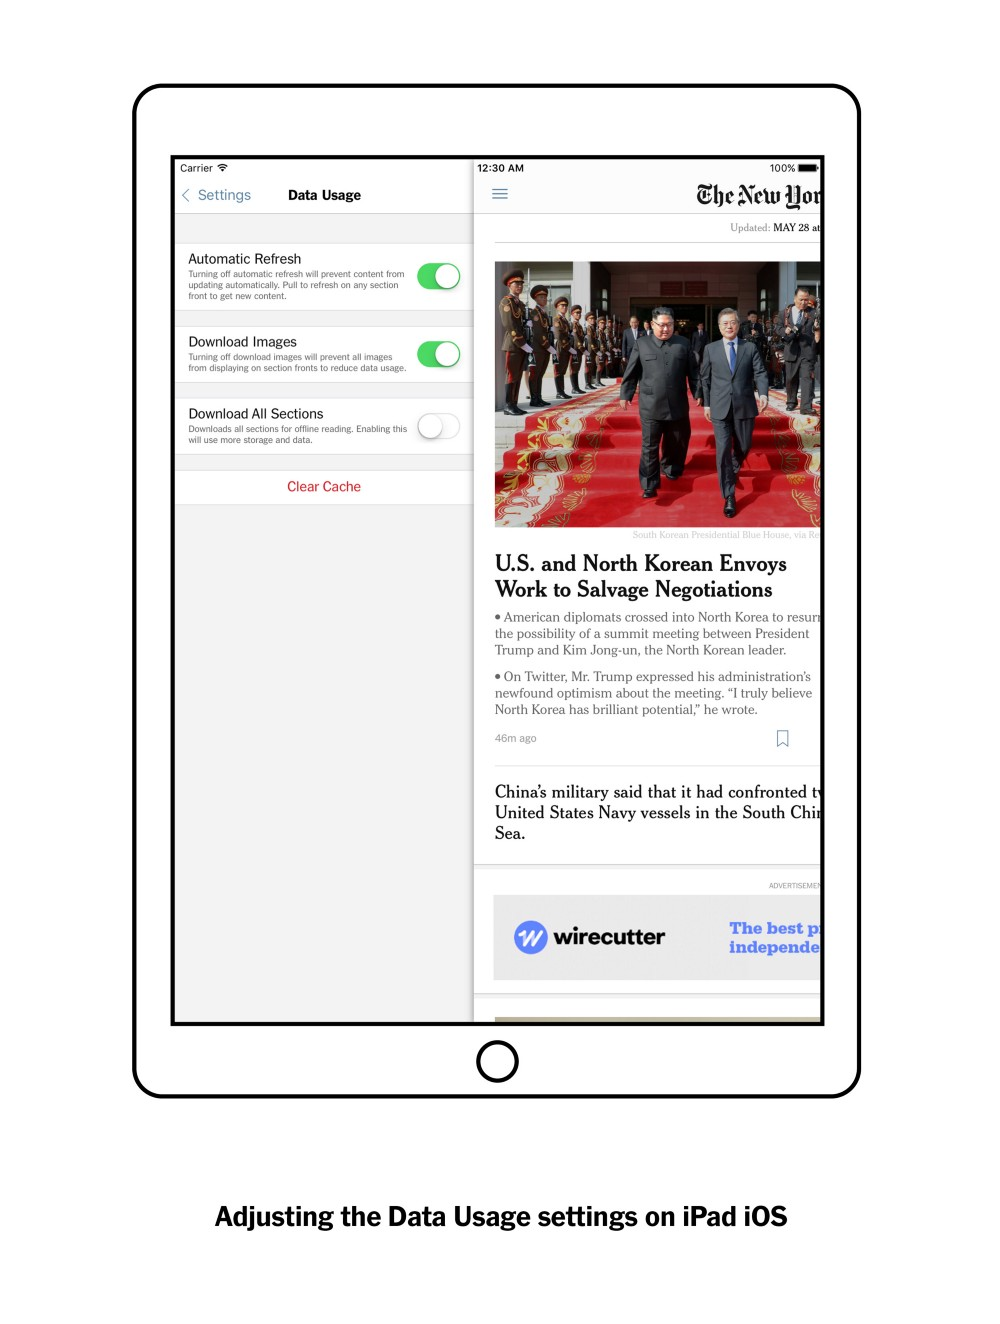 Giving Readers Control: Announcing Two New Options in The New York